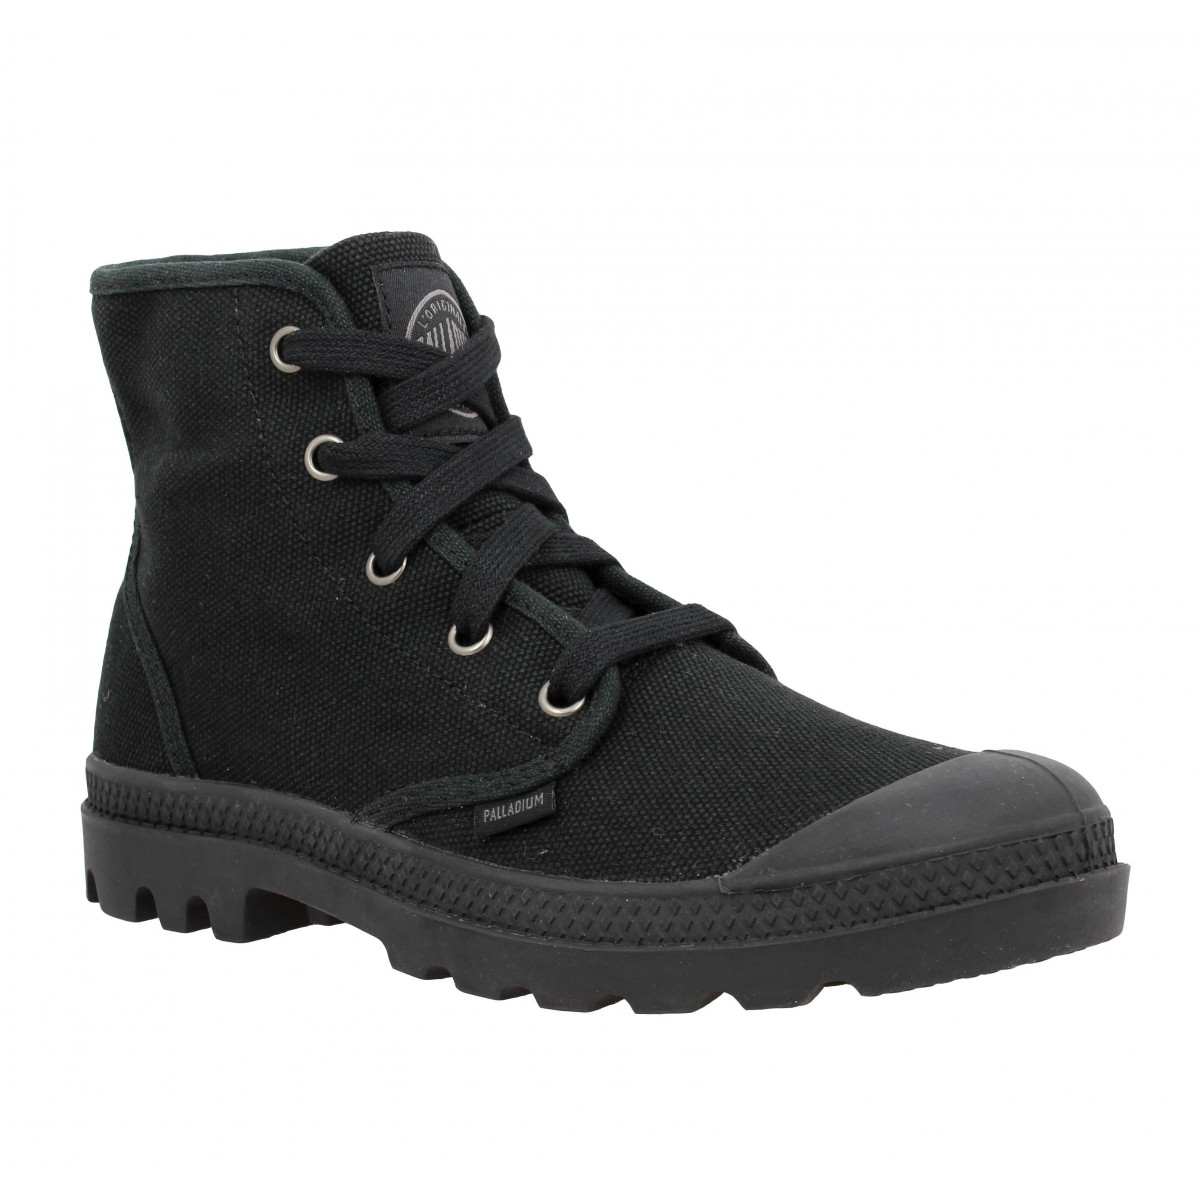 Bottines PALLADIUM US Pampa Hi toile Femme Noir